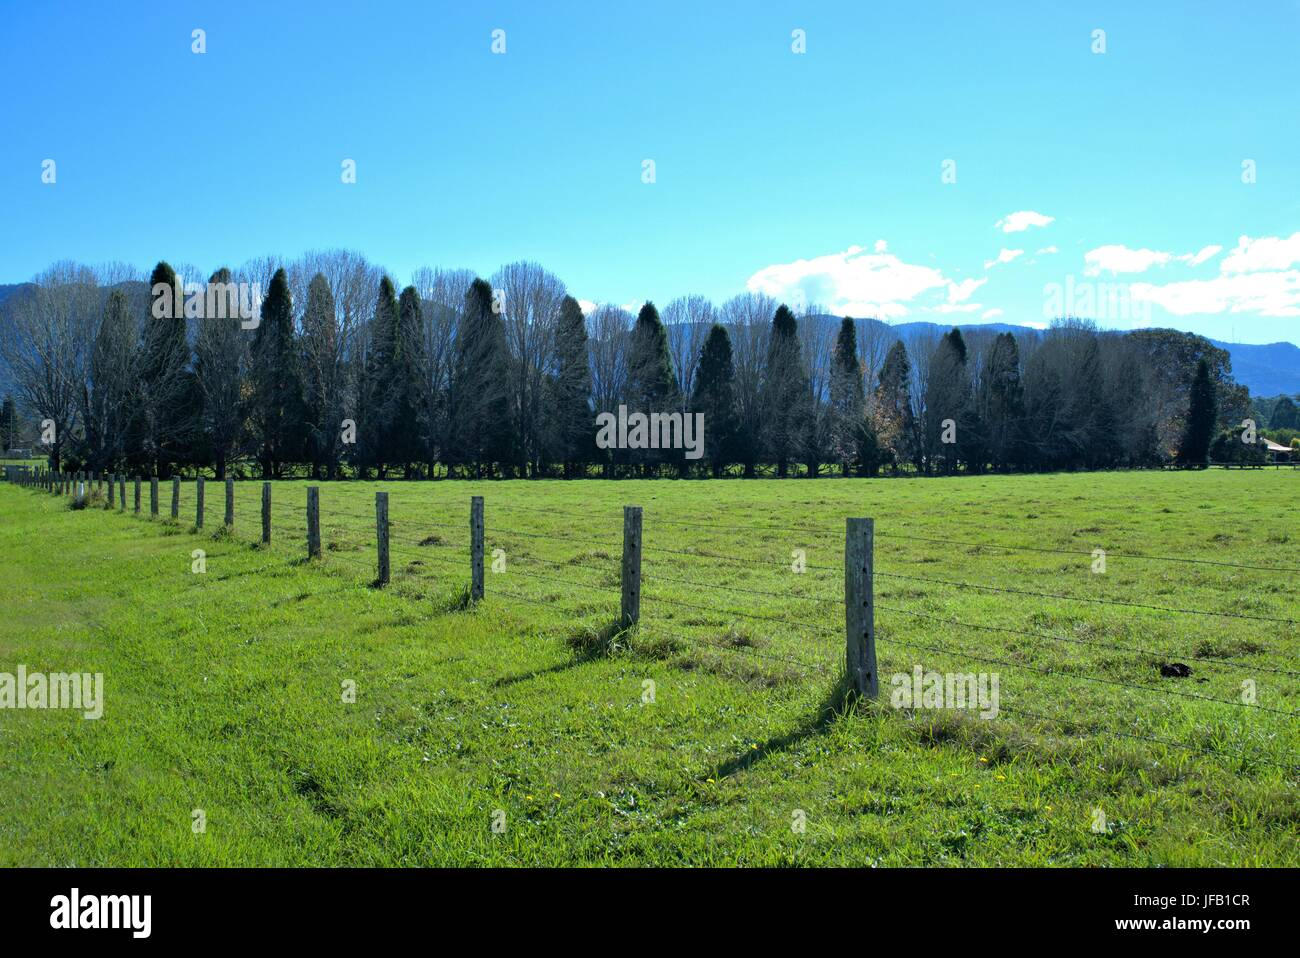 Beautiful countryside with green grass, trees and blue sky and mountain top in the far background in New South Wales - Stock Image